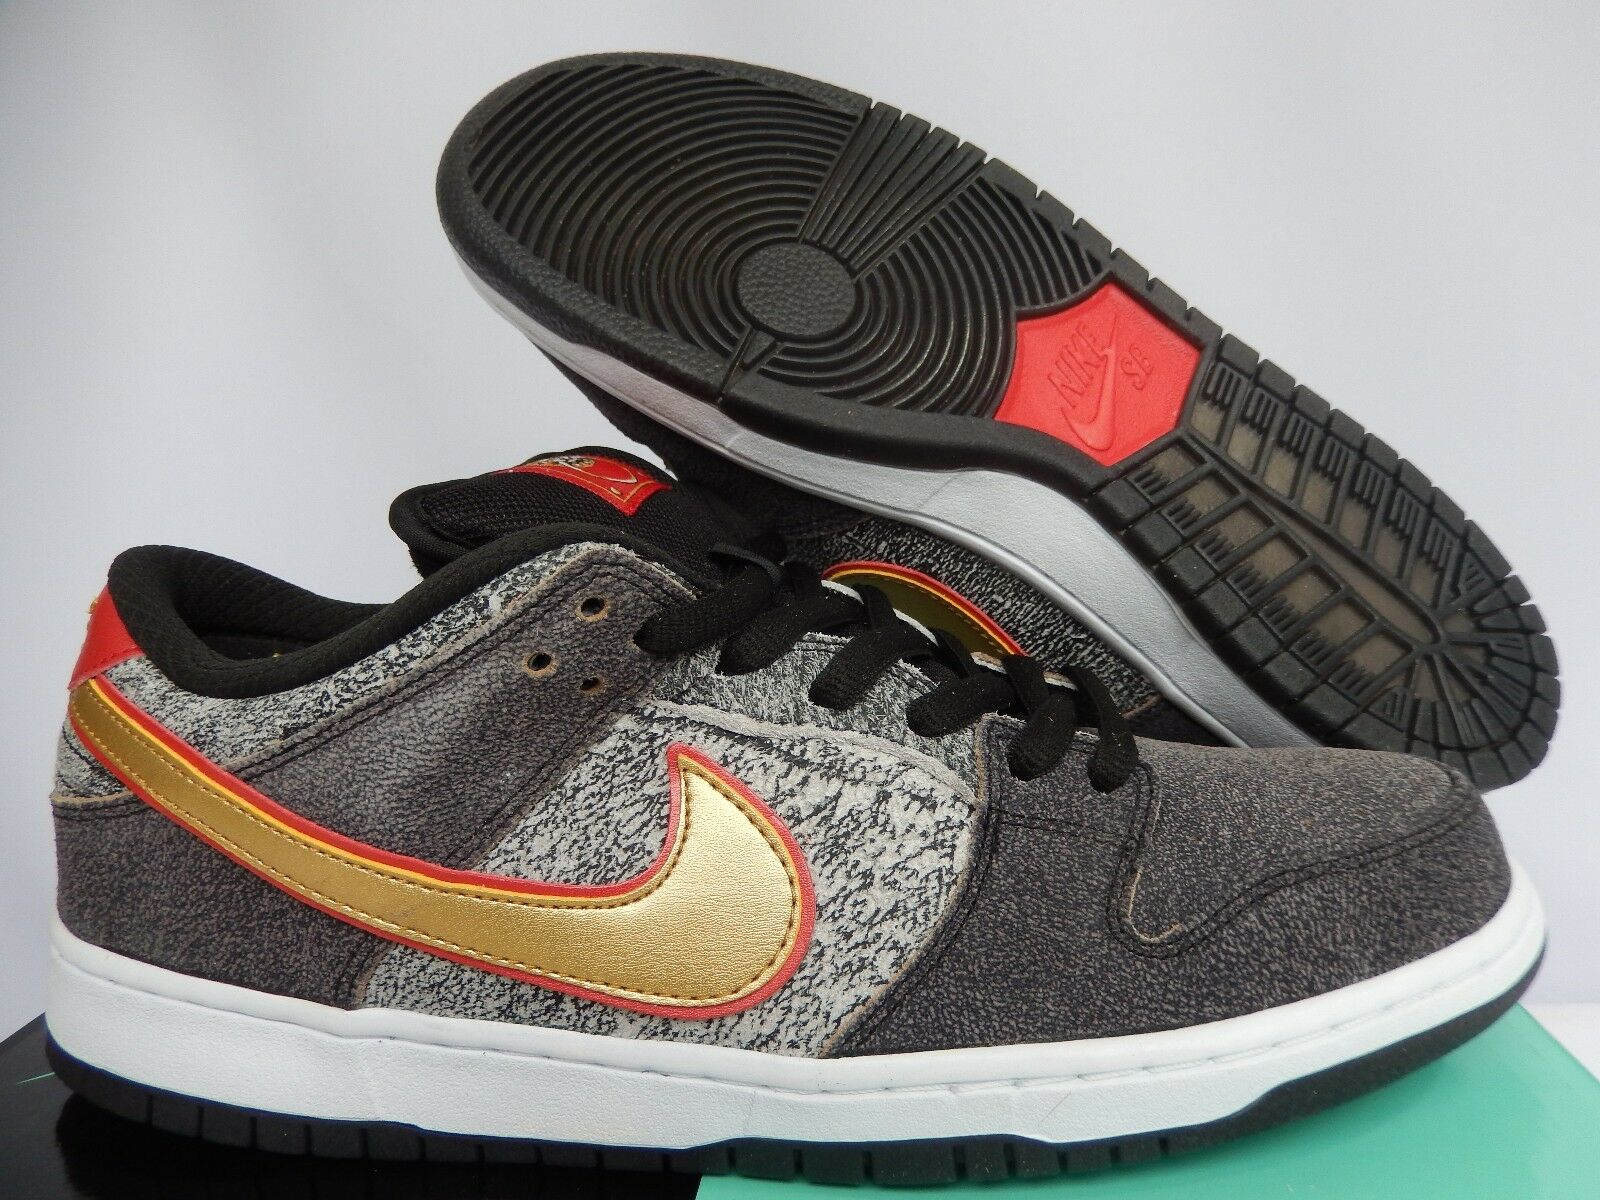 NIKE DUNK LOW PREMIUM SB QS BEIJING BLACK-METALLIC GOLD SZ 10.5 [504750-077]